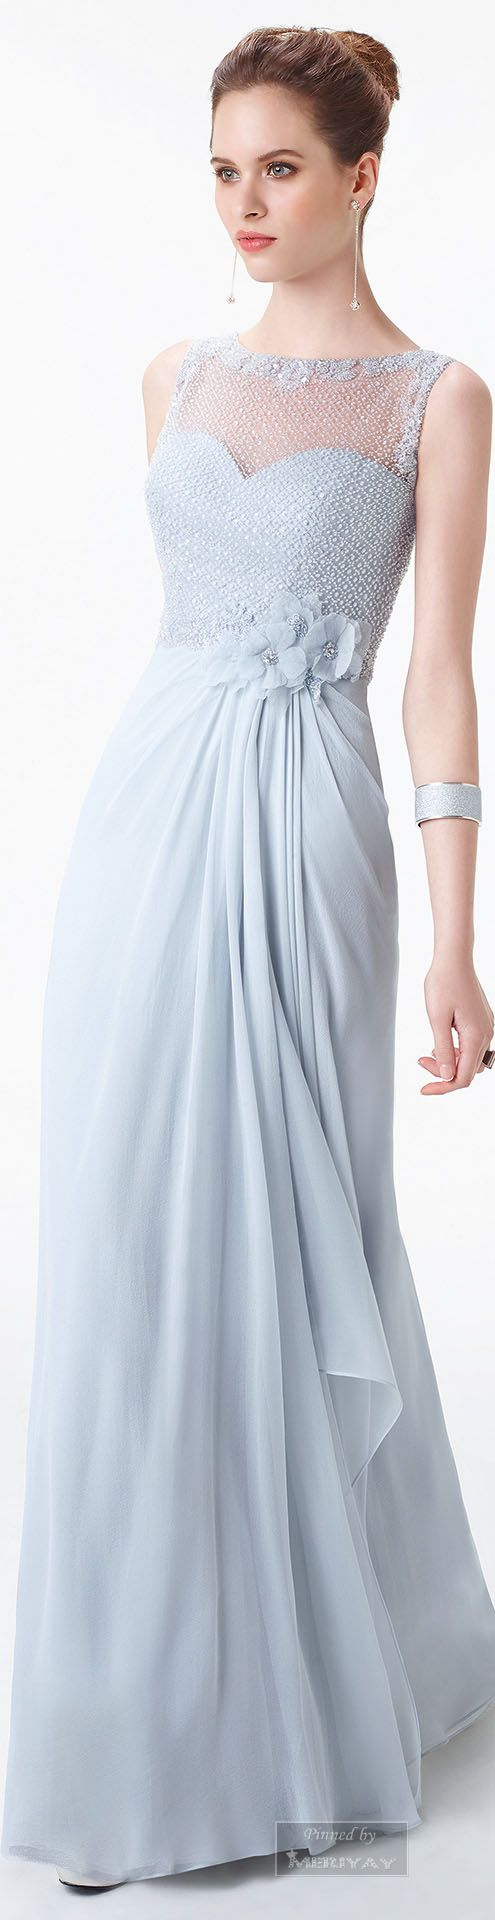 Aire Barcelona ~ Sheer Bodice Evening Dress, Sky Blue 2015